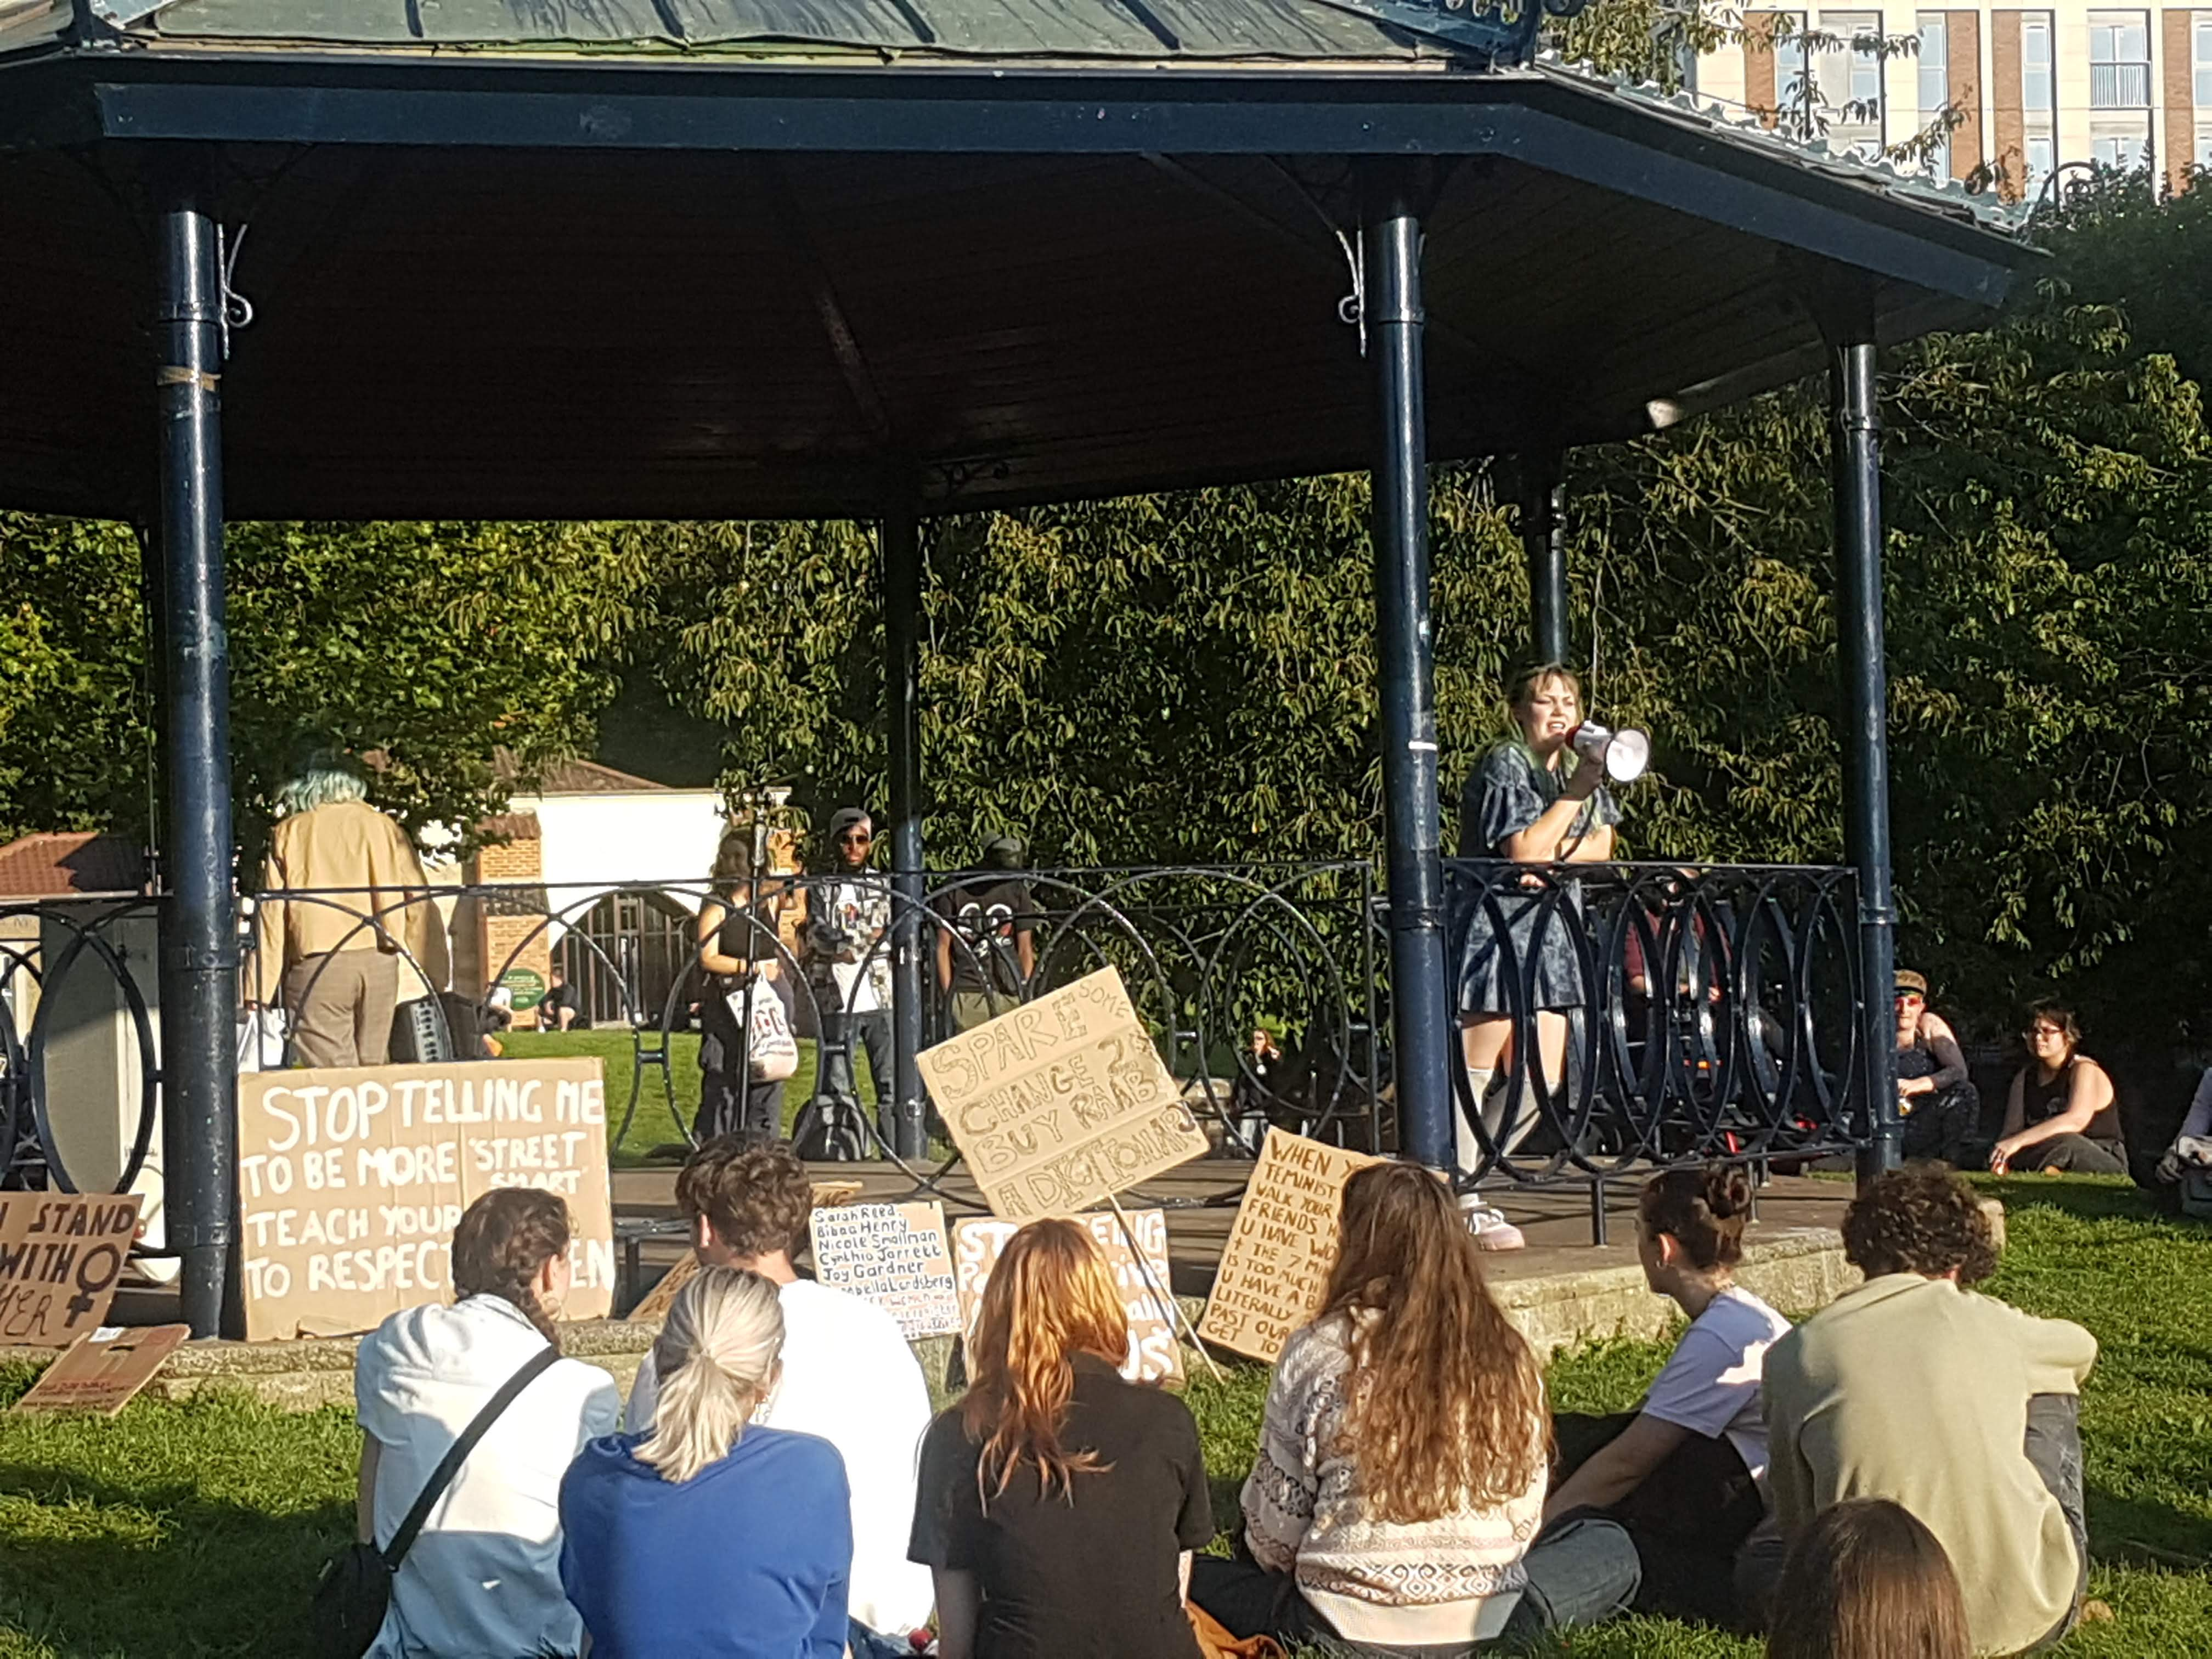 A woman speaks through a megaphone to the crowd at the Bandstand.